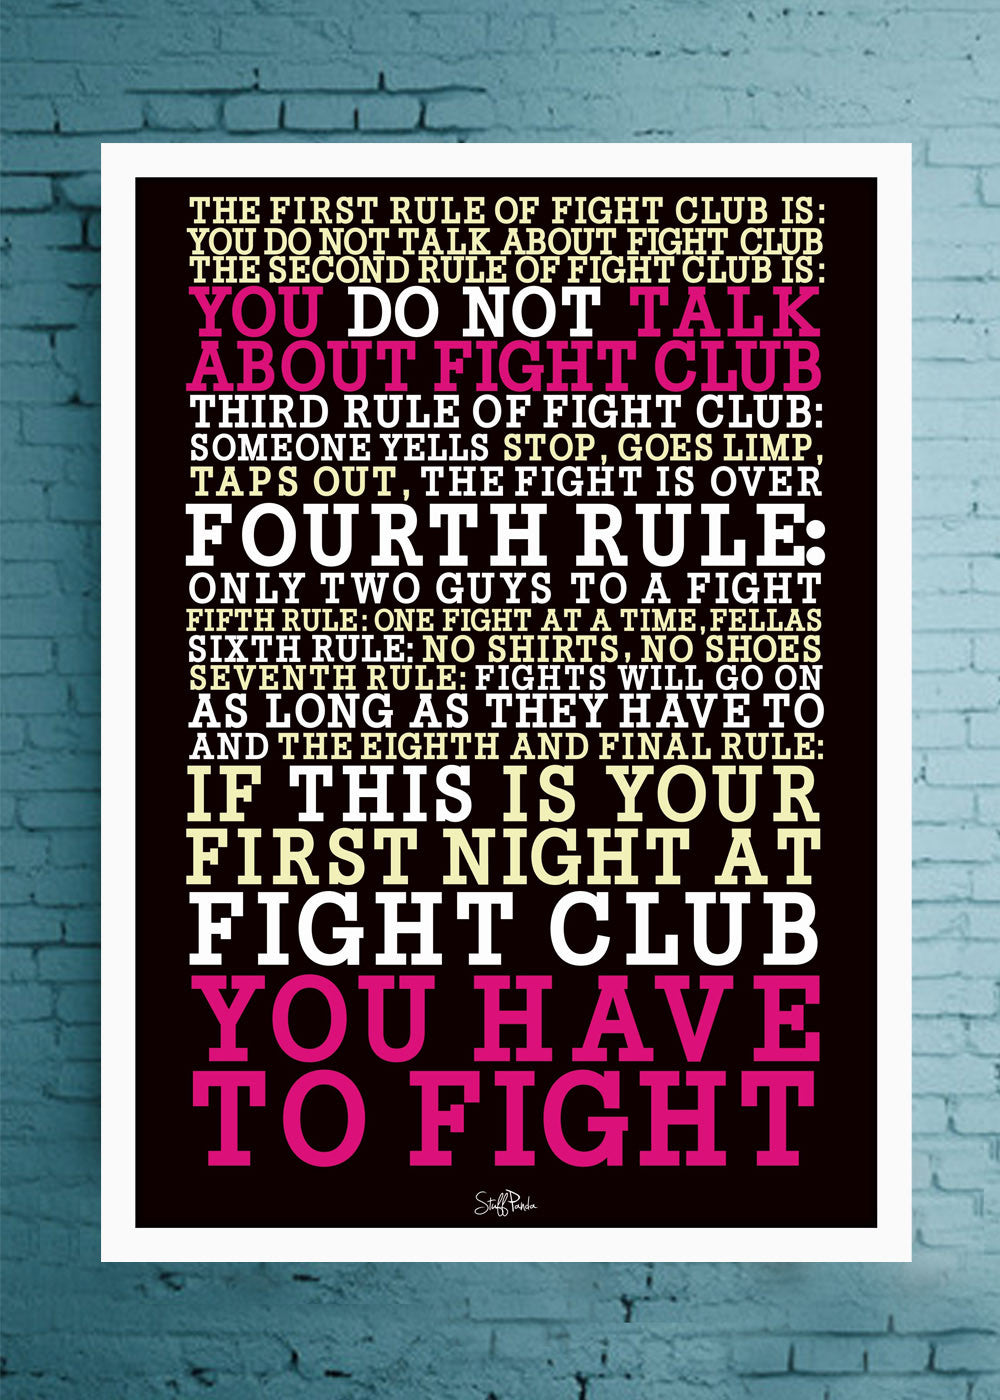 Cool Abstract Motovation Fight club rules Glass frame posters Wall art - stuffpanda - 1